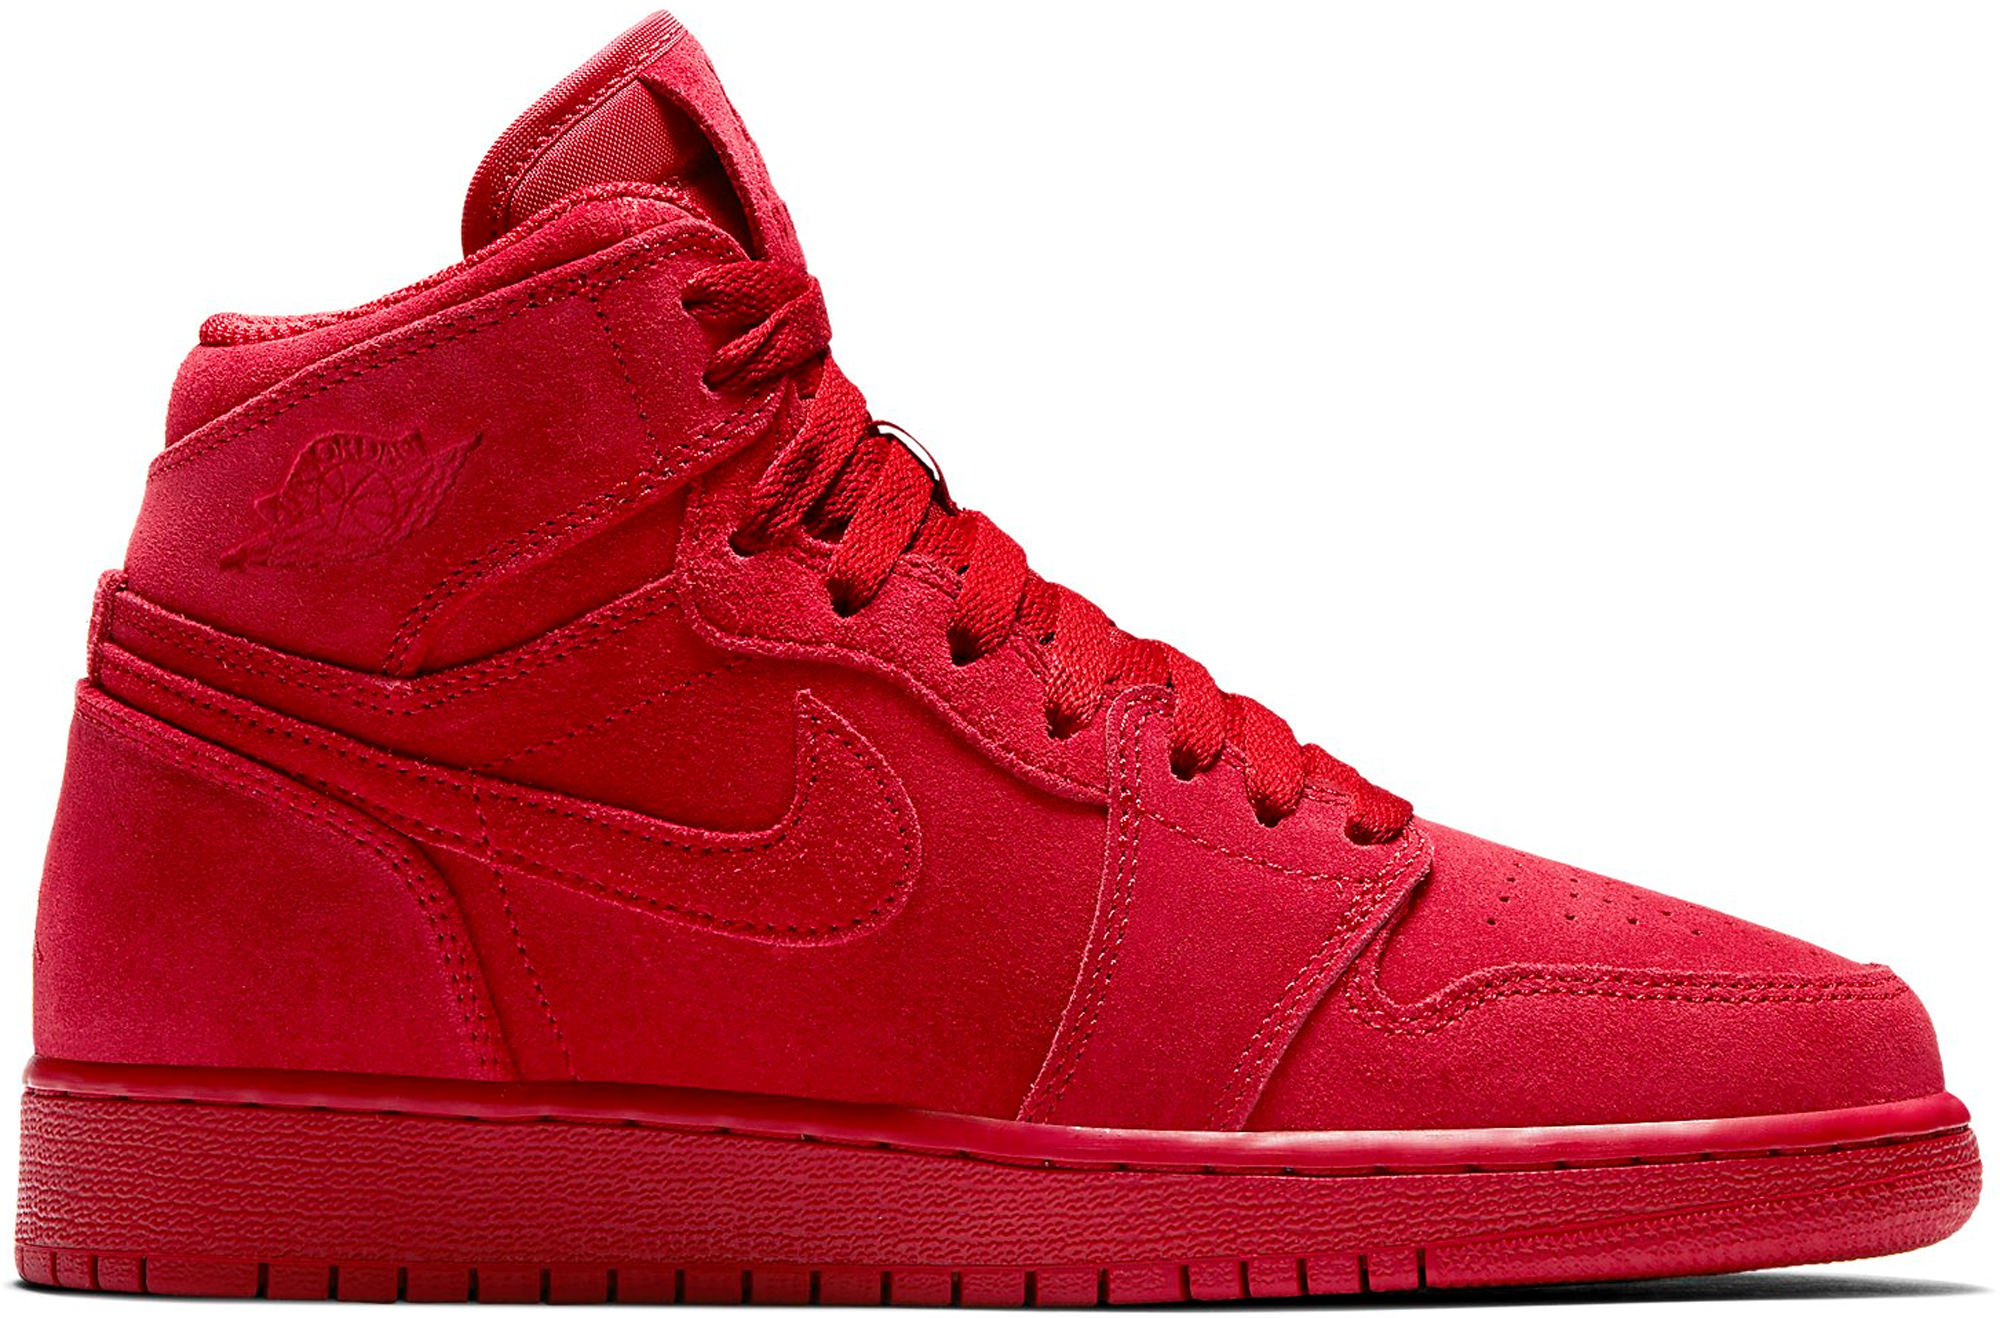 Jordan 1 Retro Red Suede (GS)